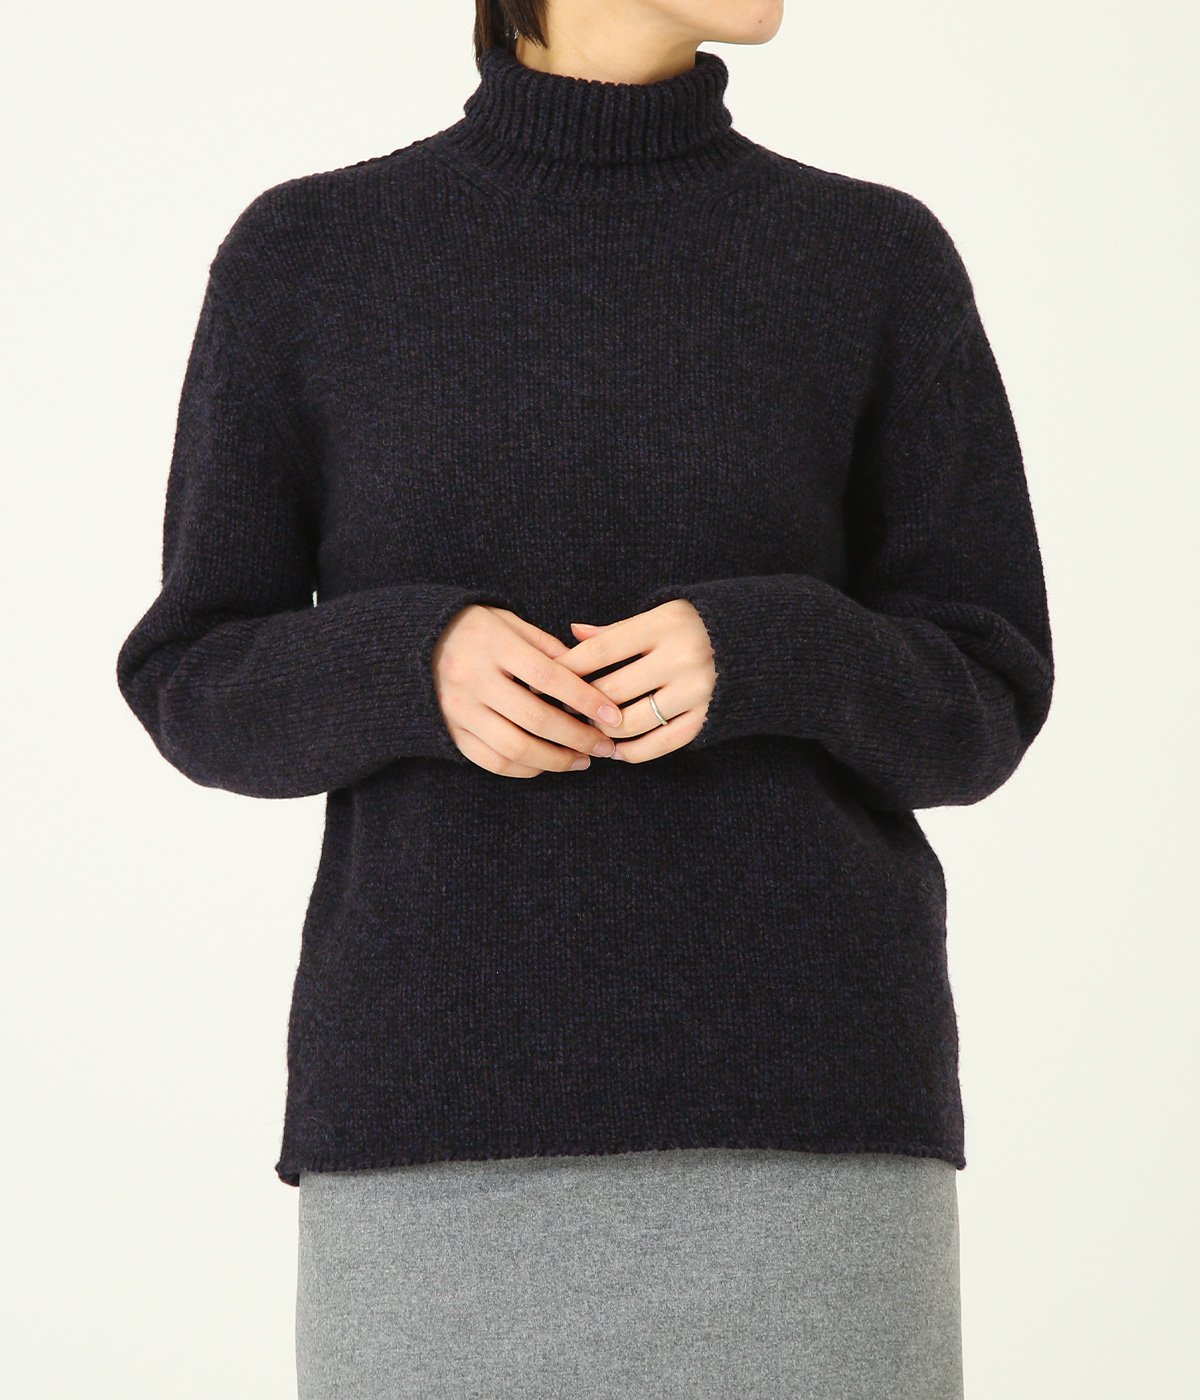 【レディース】CAMEL WOOL MIX KNIT TURTLE NECK P/O